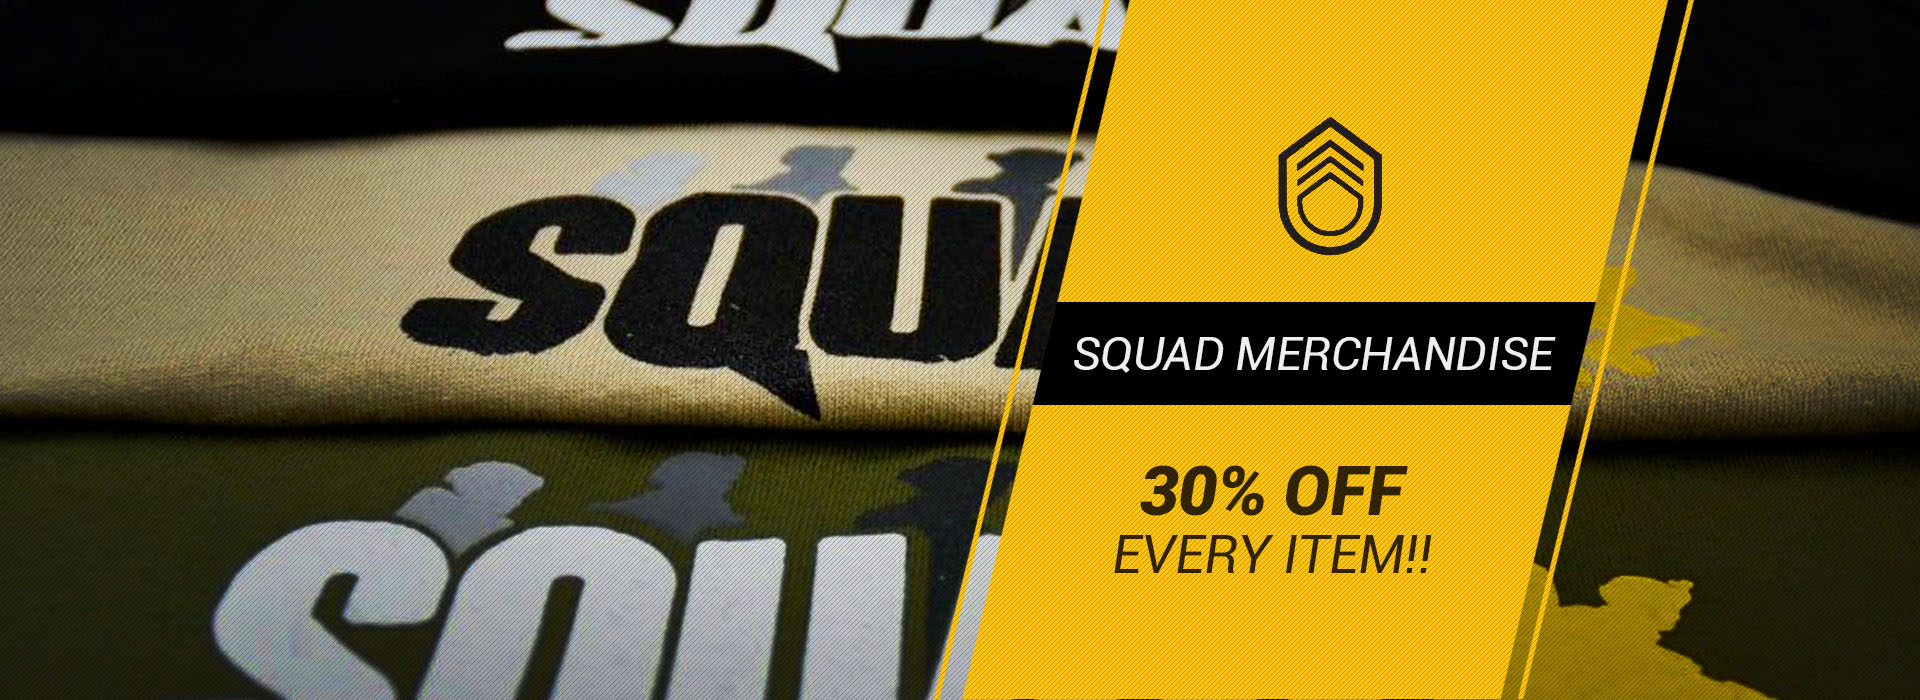 squadmerch_discount_30off.jpg